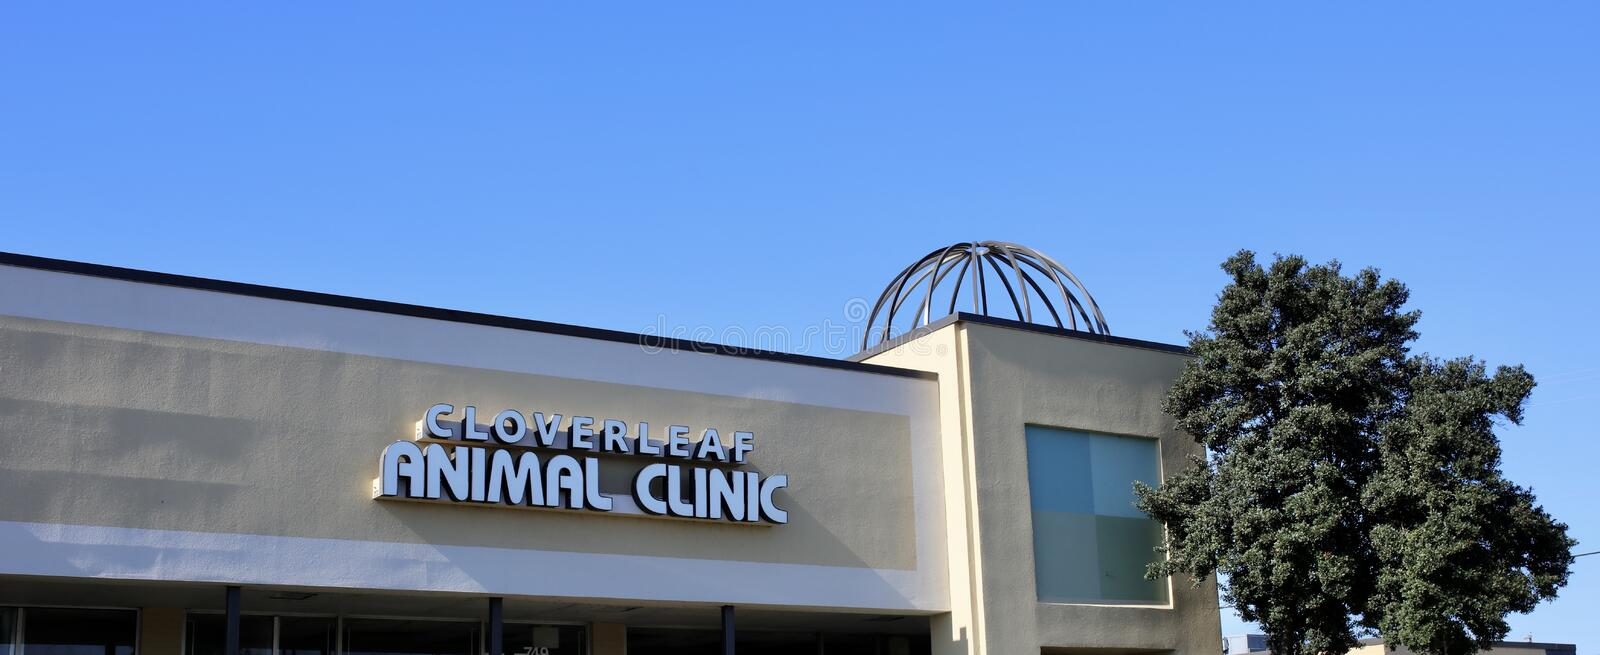 Cloverleaf Animal Clinic, Memphis, TN. Cloverleaf Animal Clinic provides the best veterinary hospital care for your cat, dog or other pet royalty free stock photos